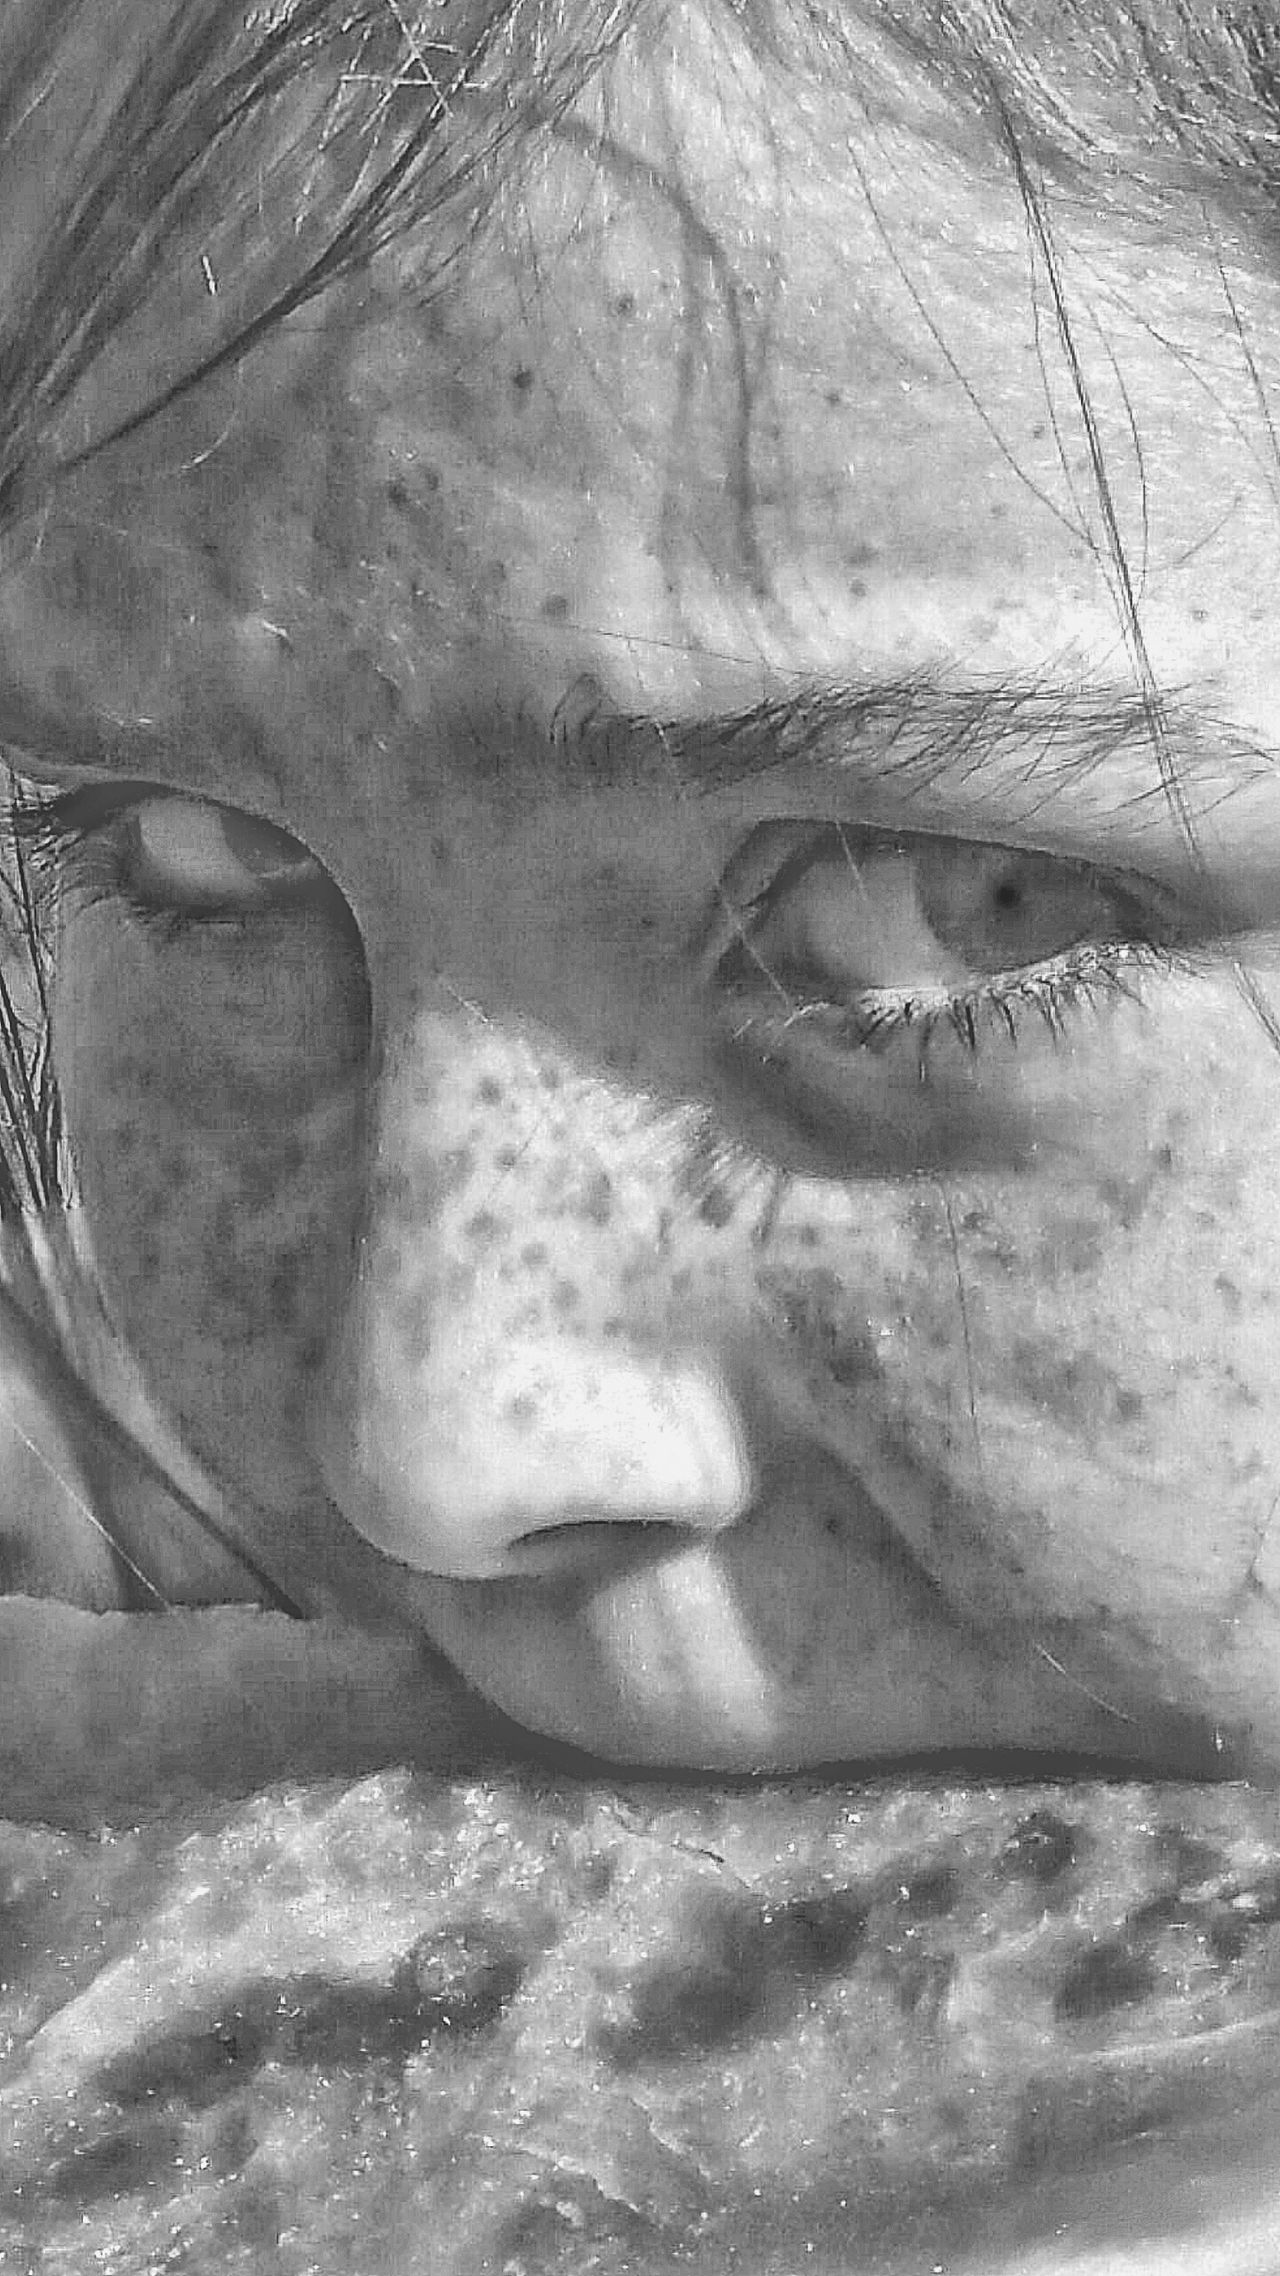 Black And White Photography Girl Watermelon Girl Eating Fruit Freckles Freckle FaceHuman Face Freckles On My Face (: Close-up Headshot Young Adult Outdoors Human Body Part Real People Day Eating Outdoors Eating Watermelon Children Chil The Portraitist - 2017 EyeEm Awards Live For The Story